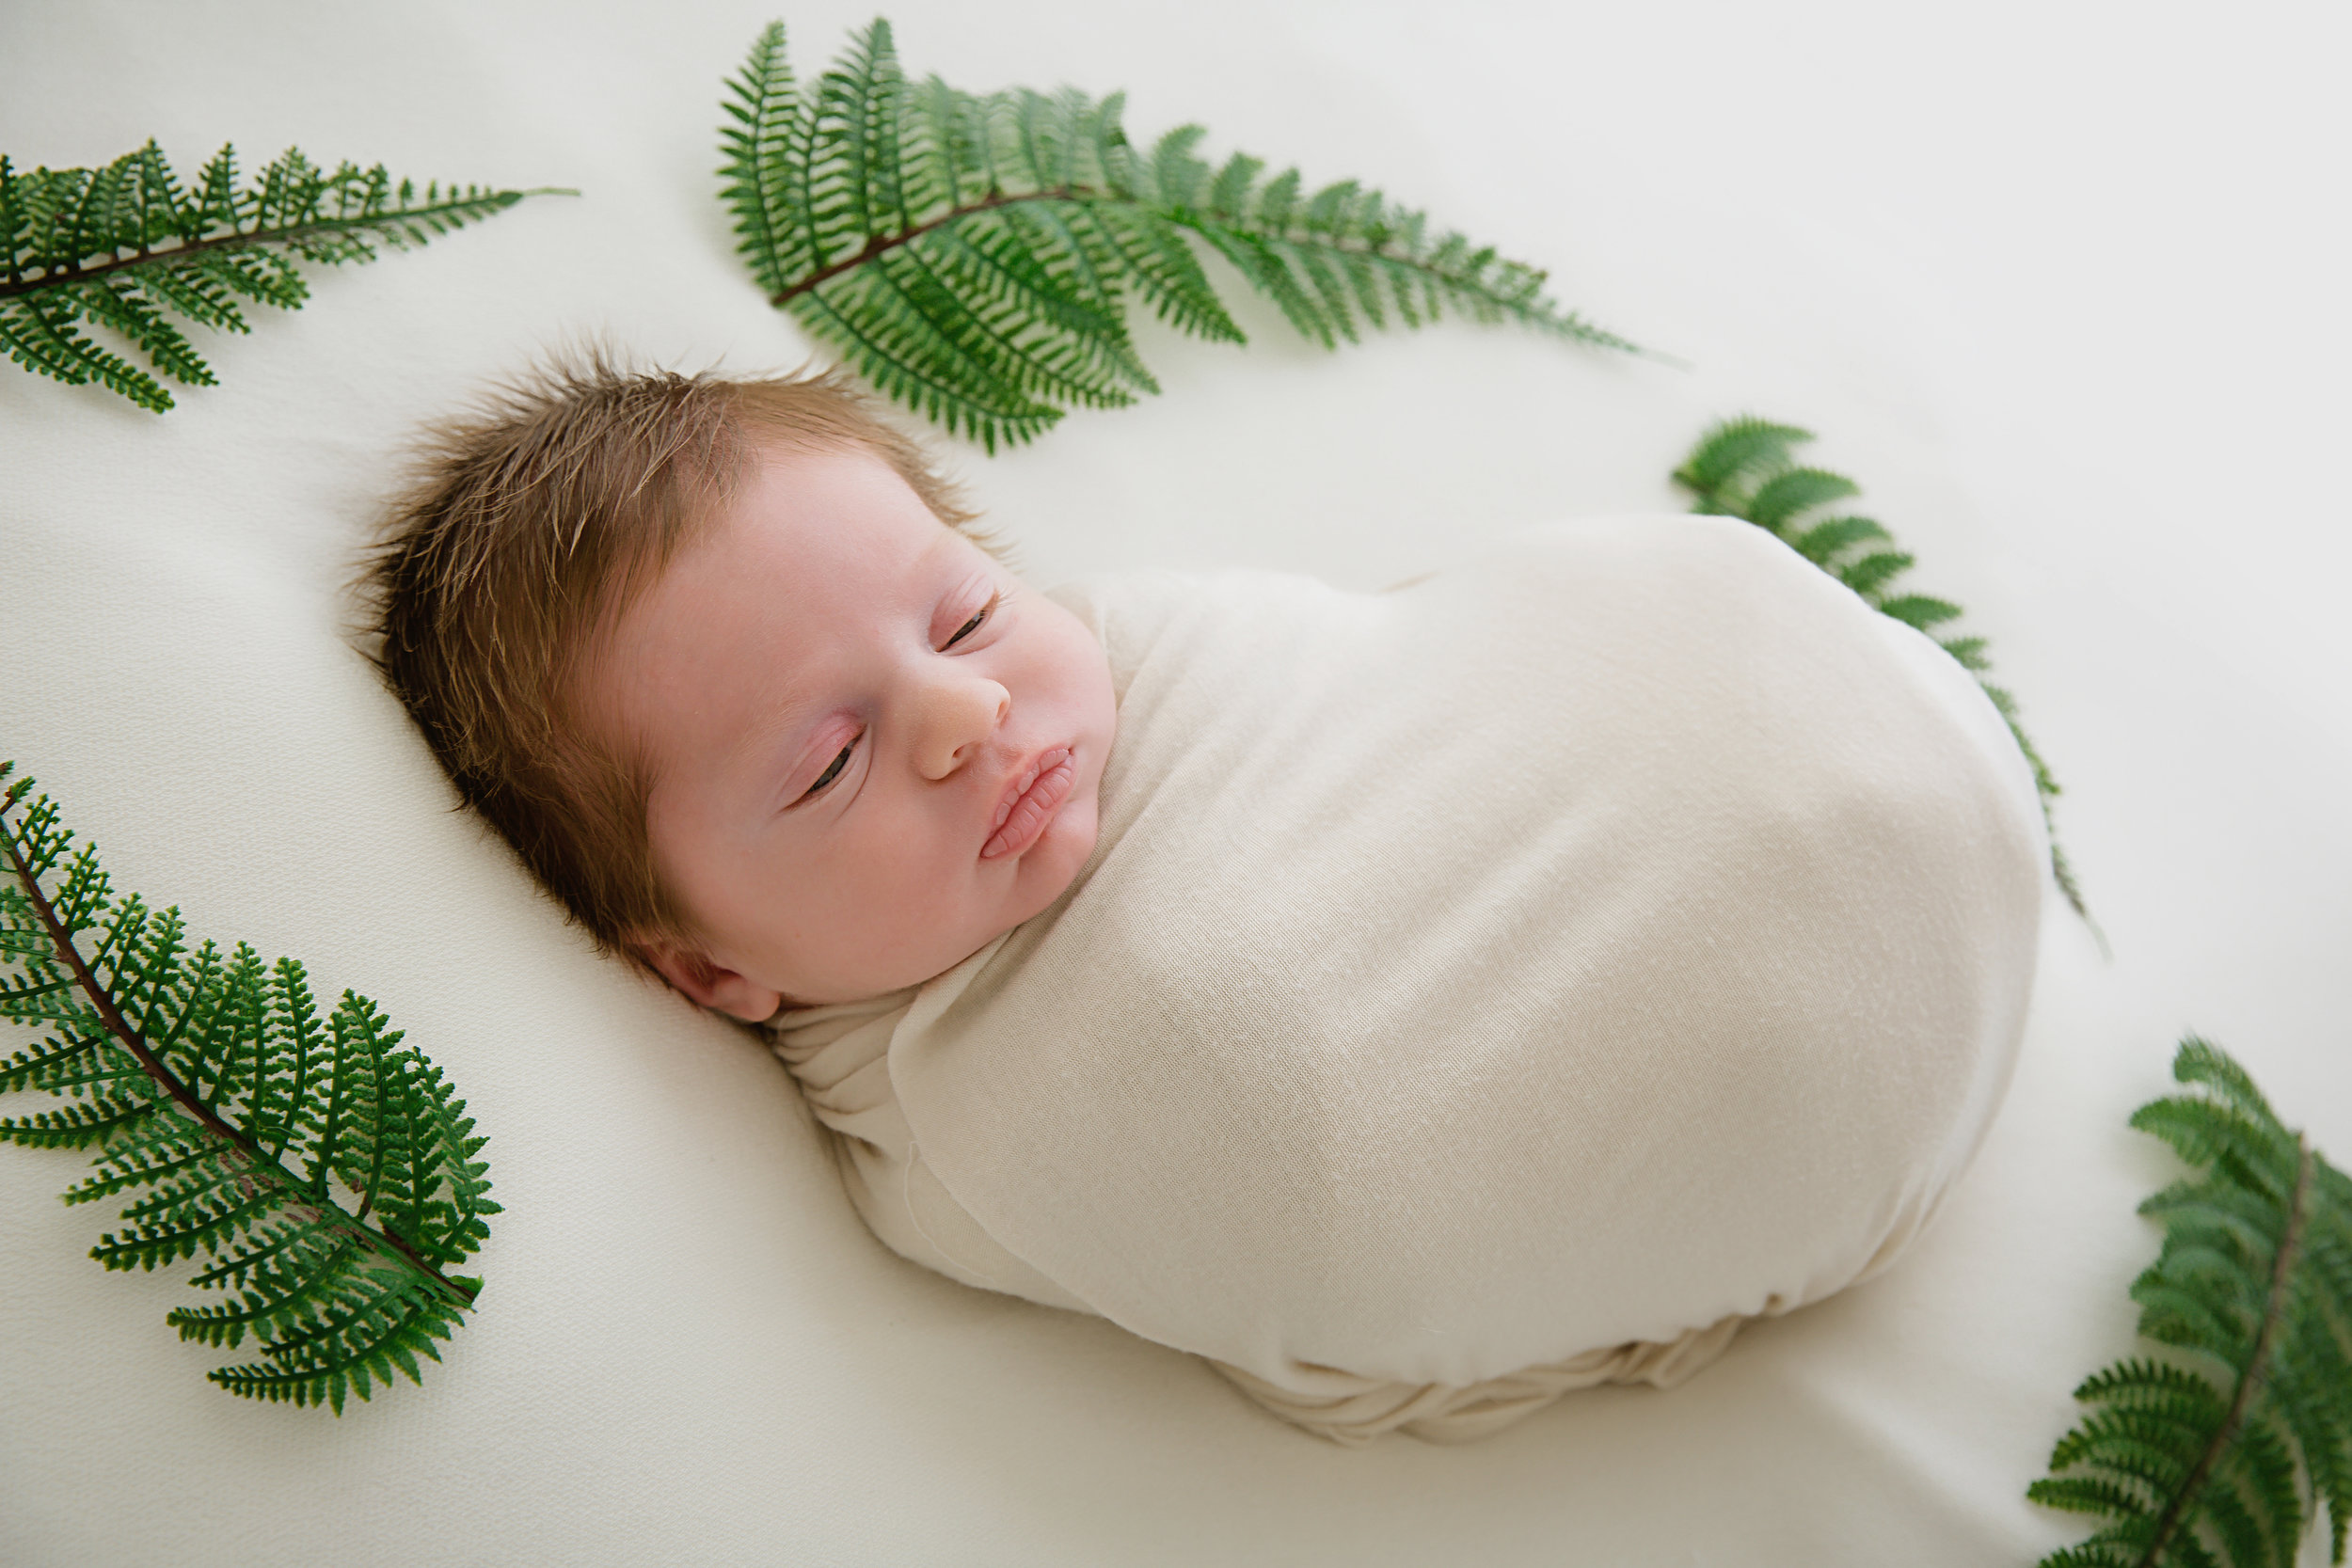 sleeping baby boy with greenery